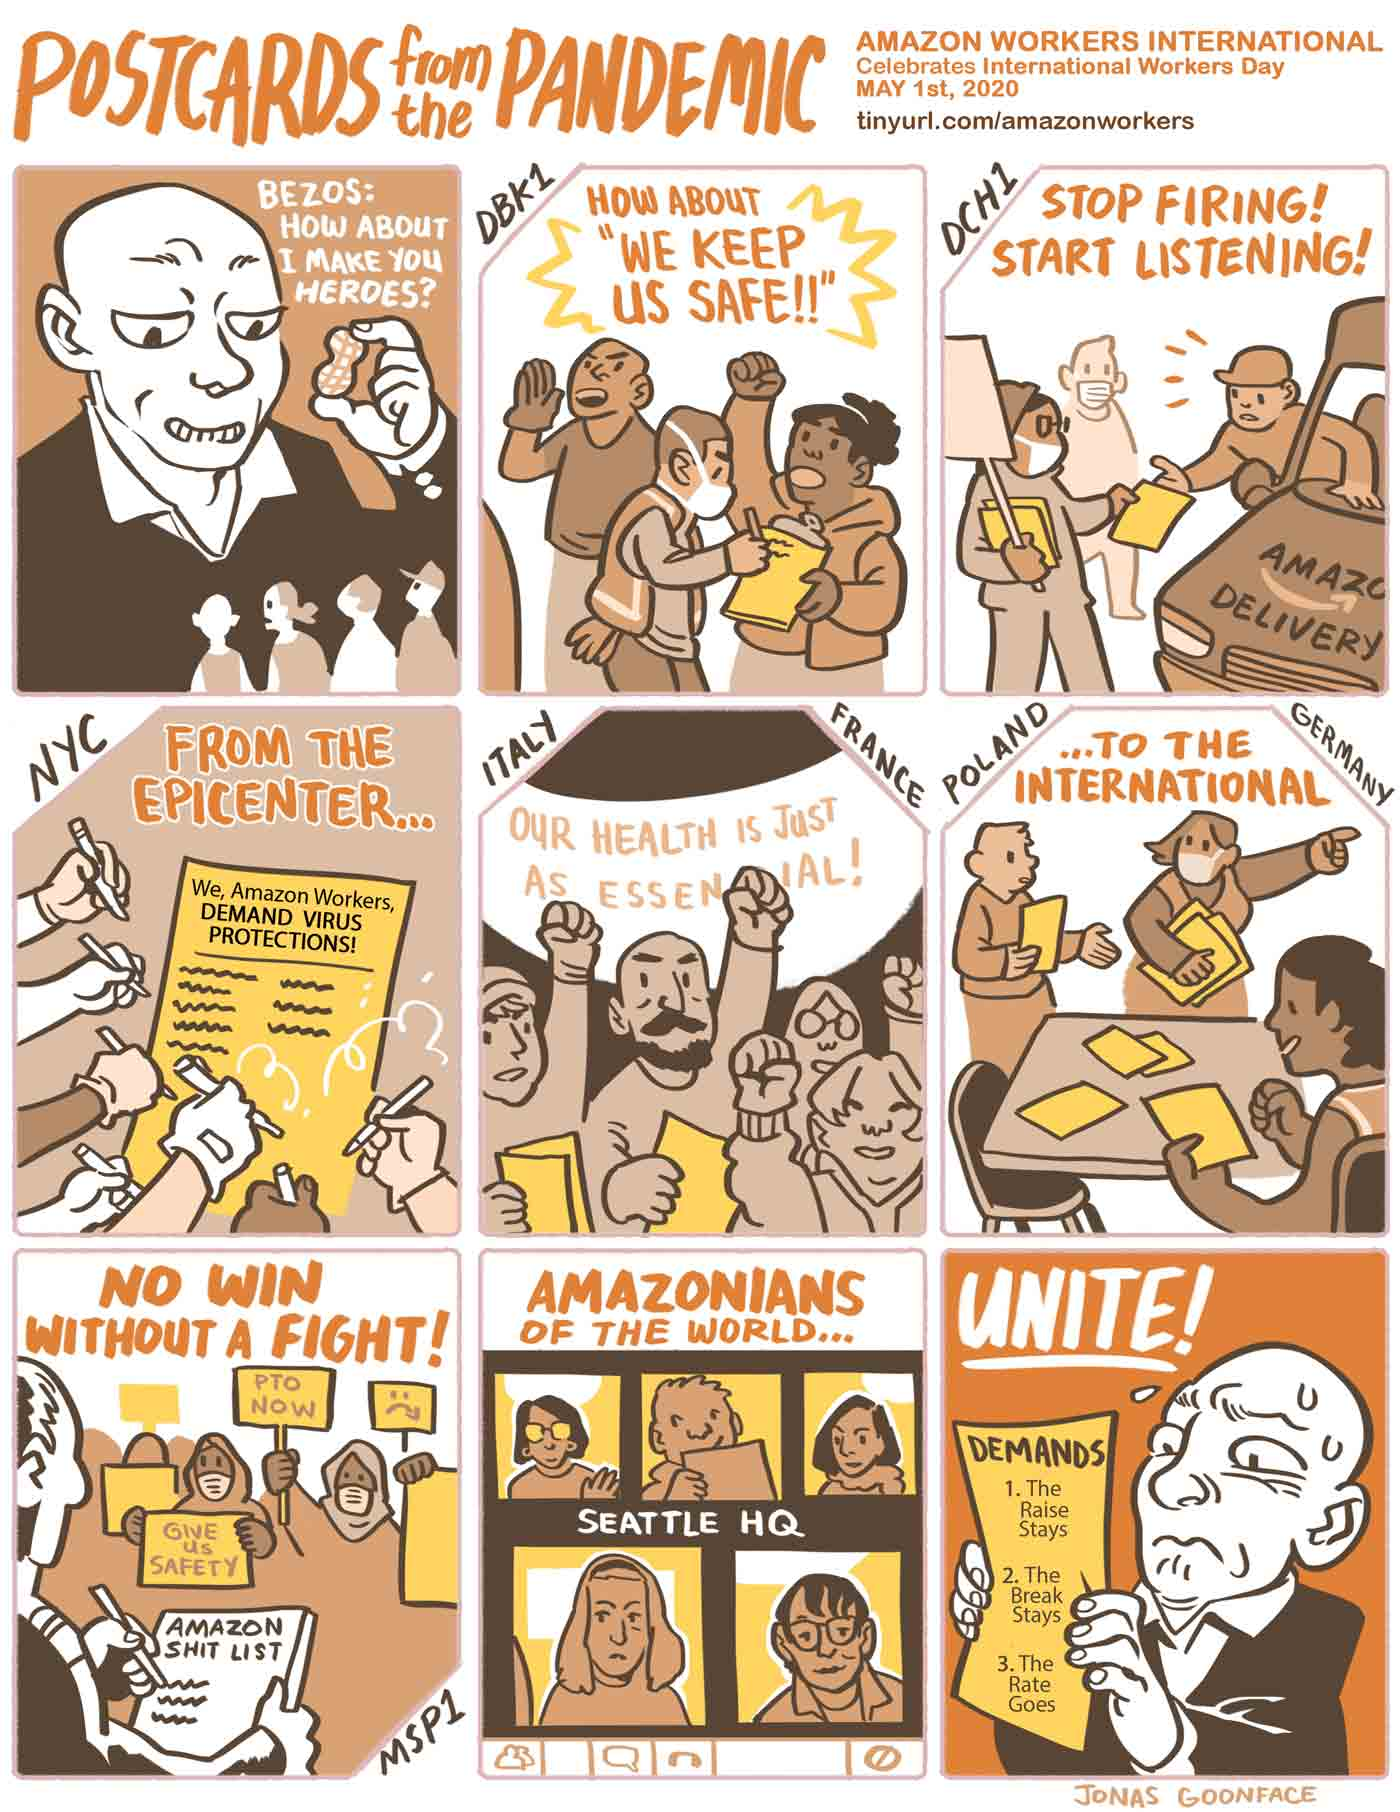 "Comic in English entitled ""Postcards from the Pandemic"" for Amazon Workers International. Jeff Bezos offers workers the 'peanut' of calling the workers heroes. The workers counter with demands for safety. Amazonians of the World, Unite!"